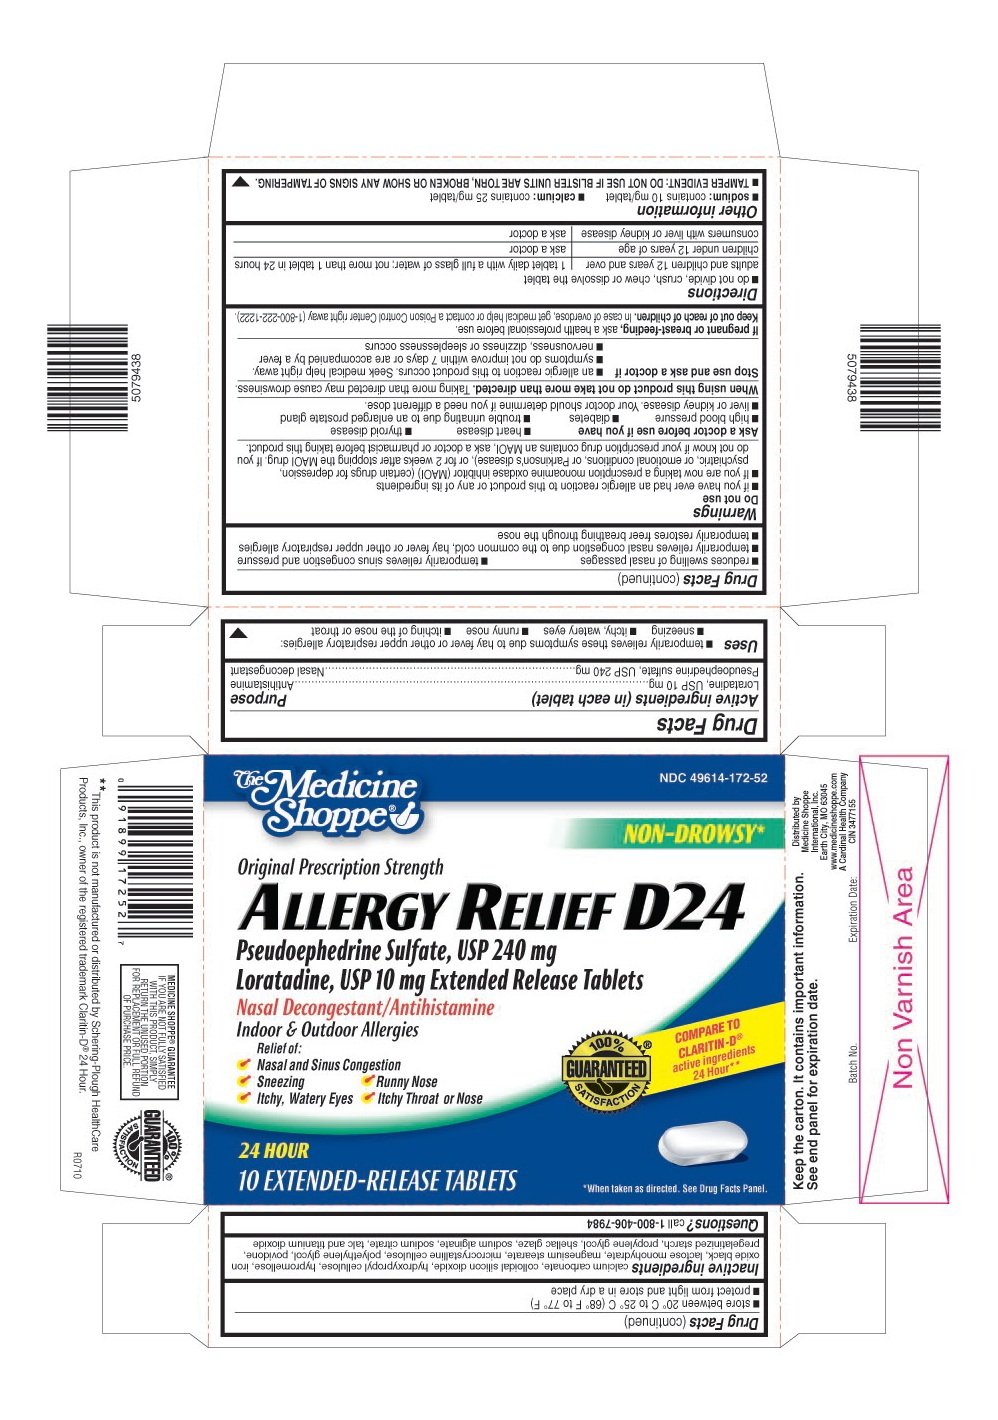 This is the blister carton label for Medicine Shoppe 10 count Allergy Relief D24 film coated, extended-release tablets.